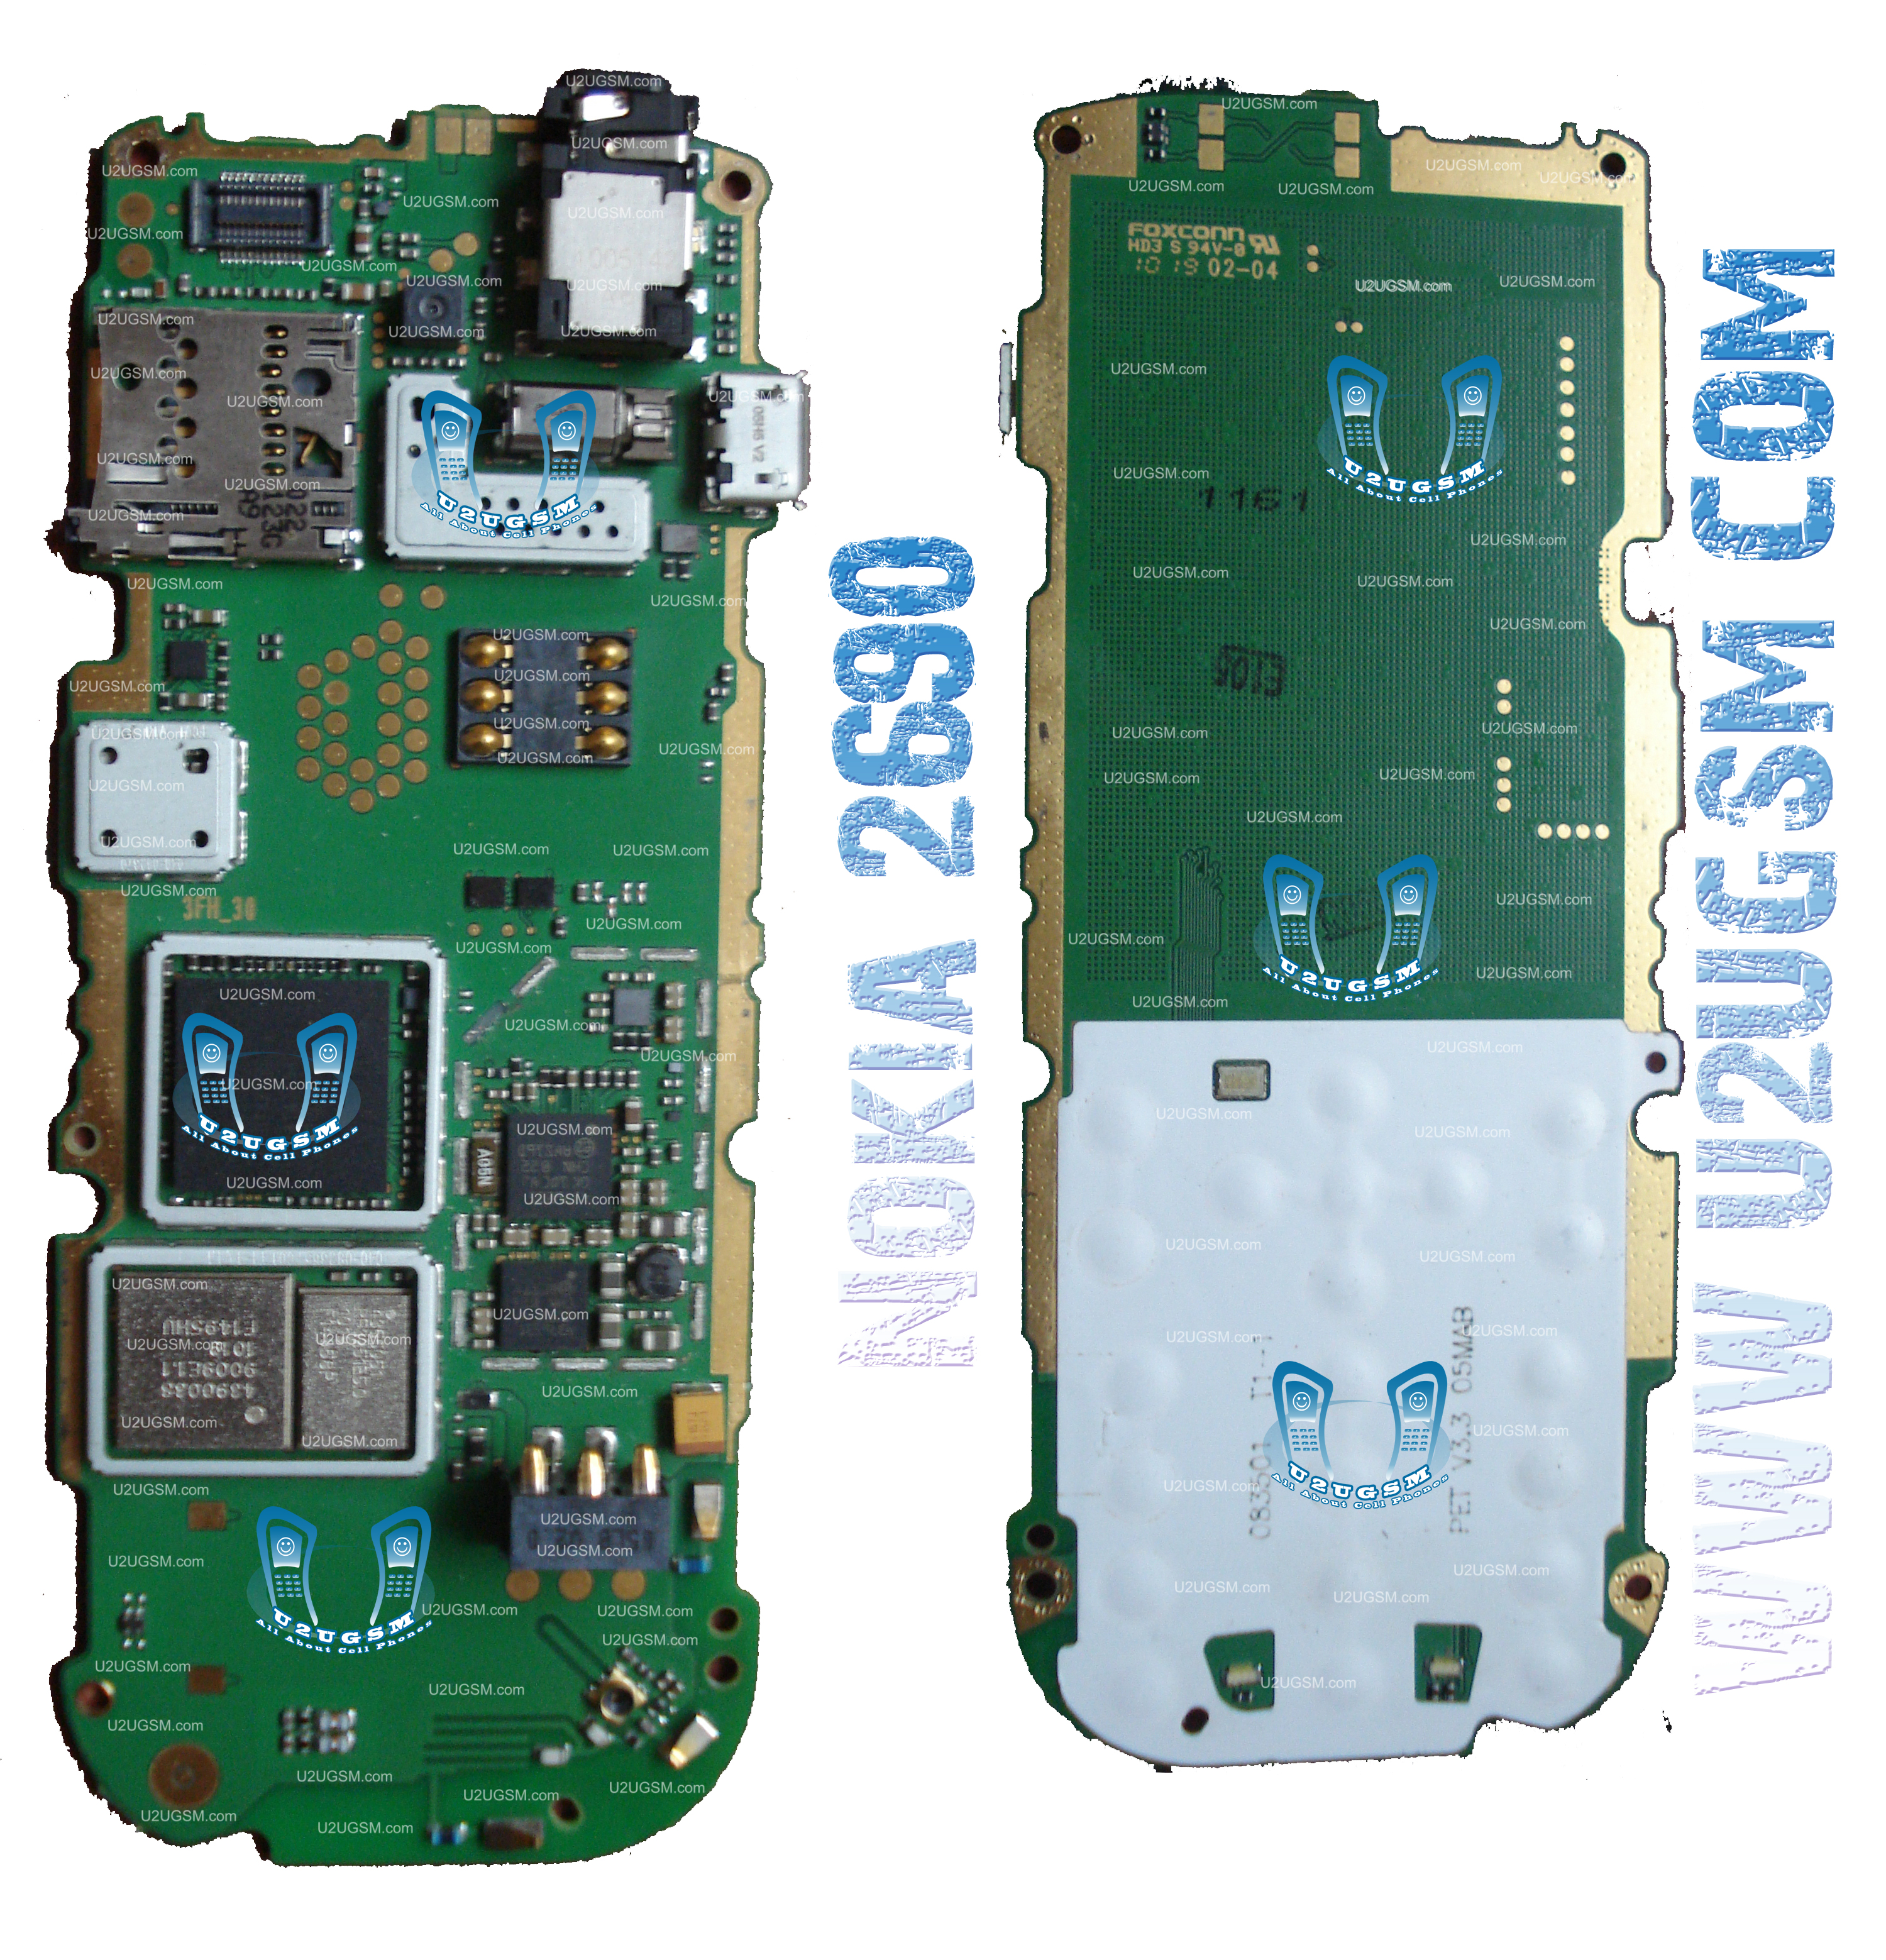 Nokia 2690 Pcb Circuit Diagram Just Another Wiring Blog Mobile Full Mother Board Layout Rh U2ugsm Com